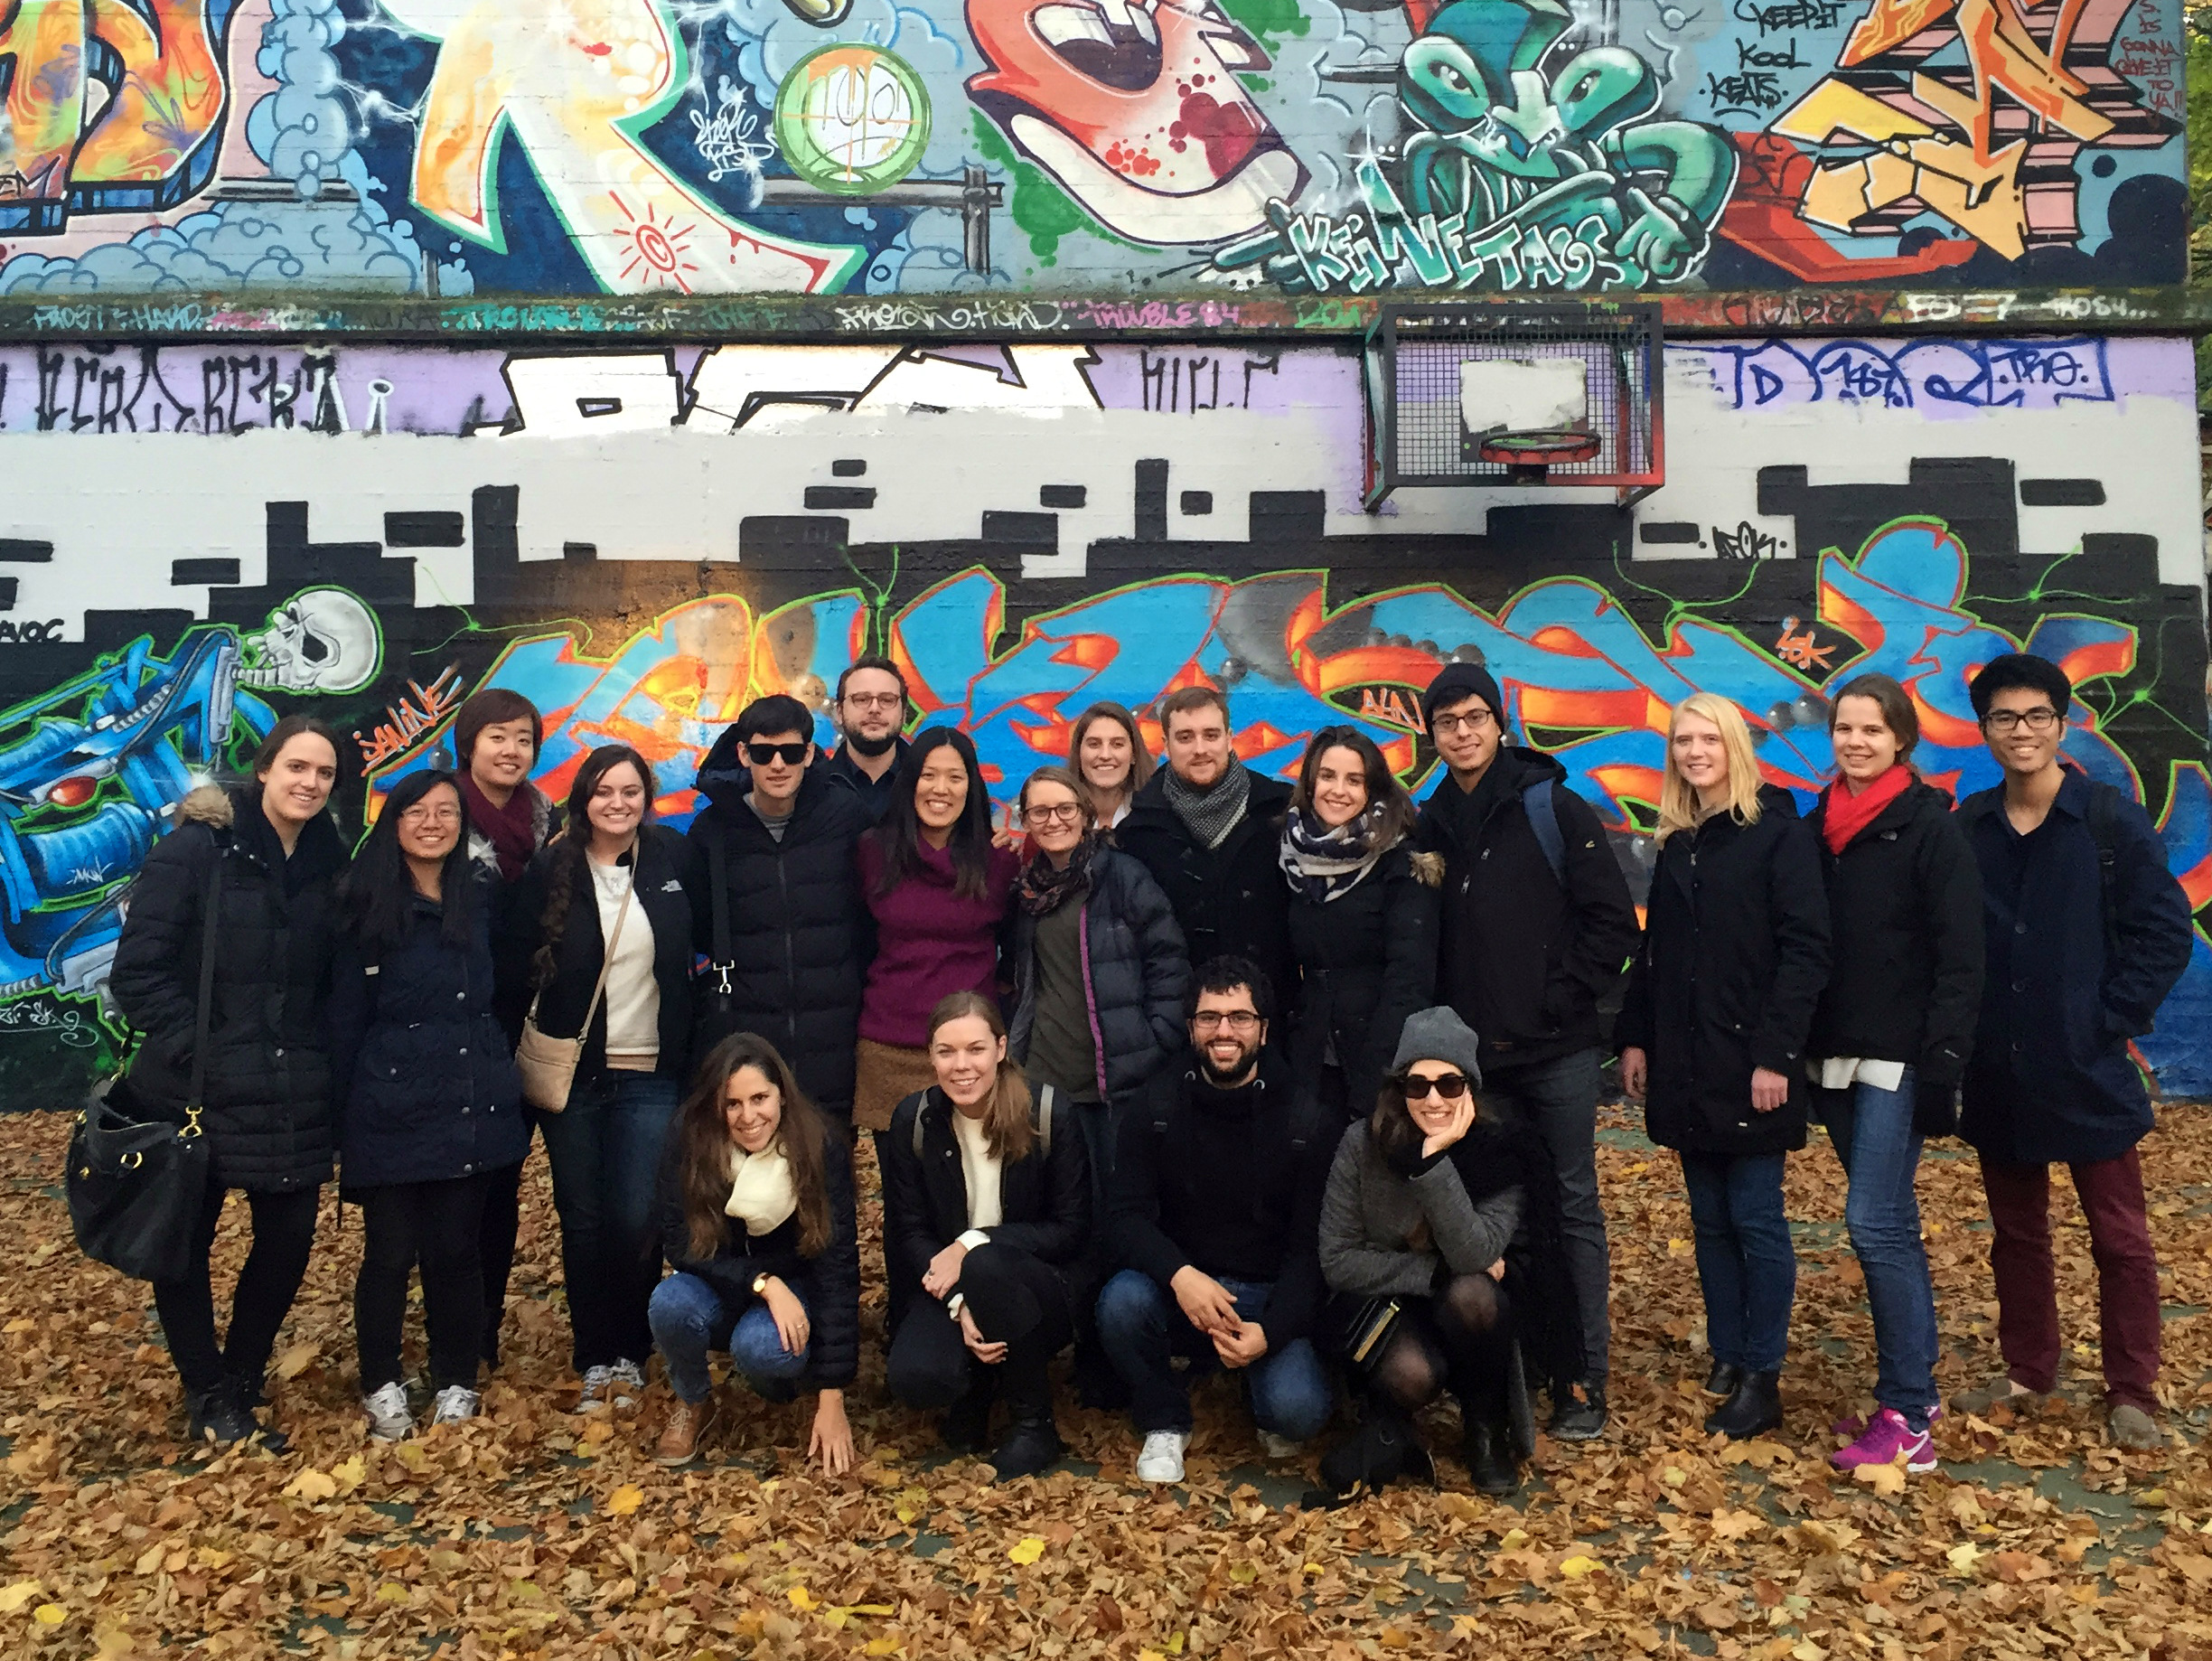 Alternative Hamburg Walking Tour